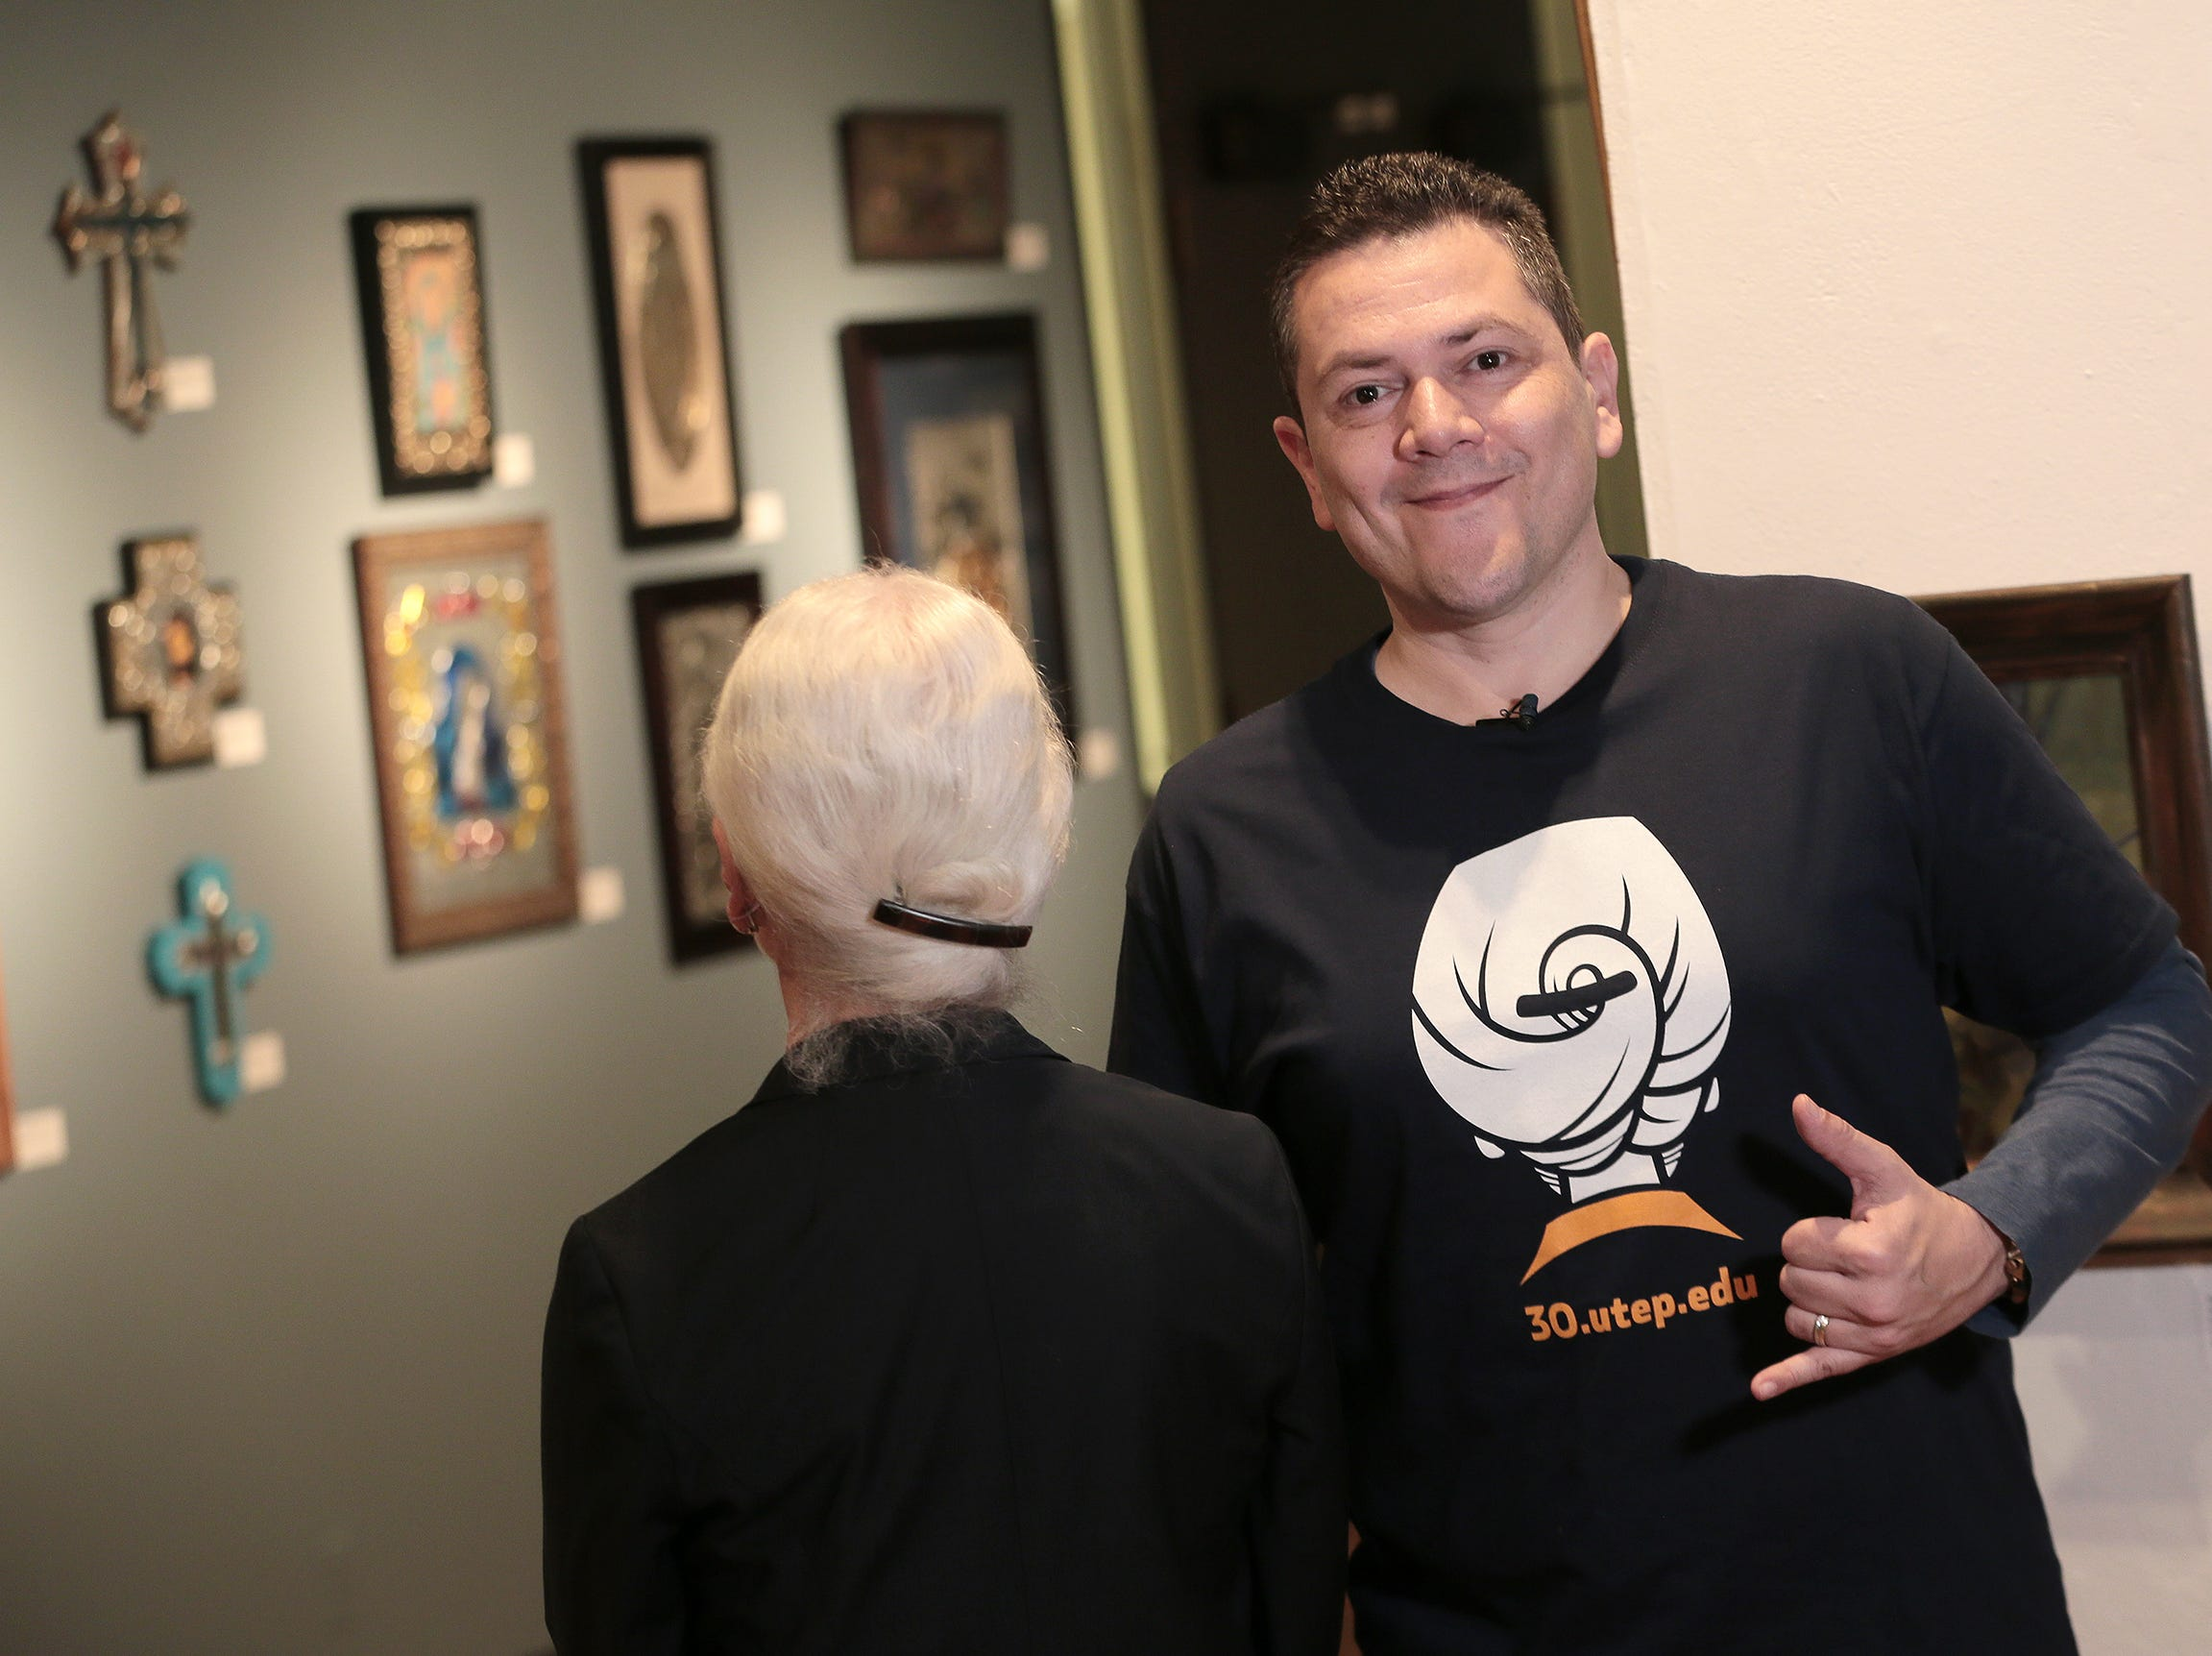 Jorge Baeza of UTEP's College of Business designed the Dr. Natalicio t-shirt featuring the outgoing president's famous bun.